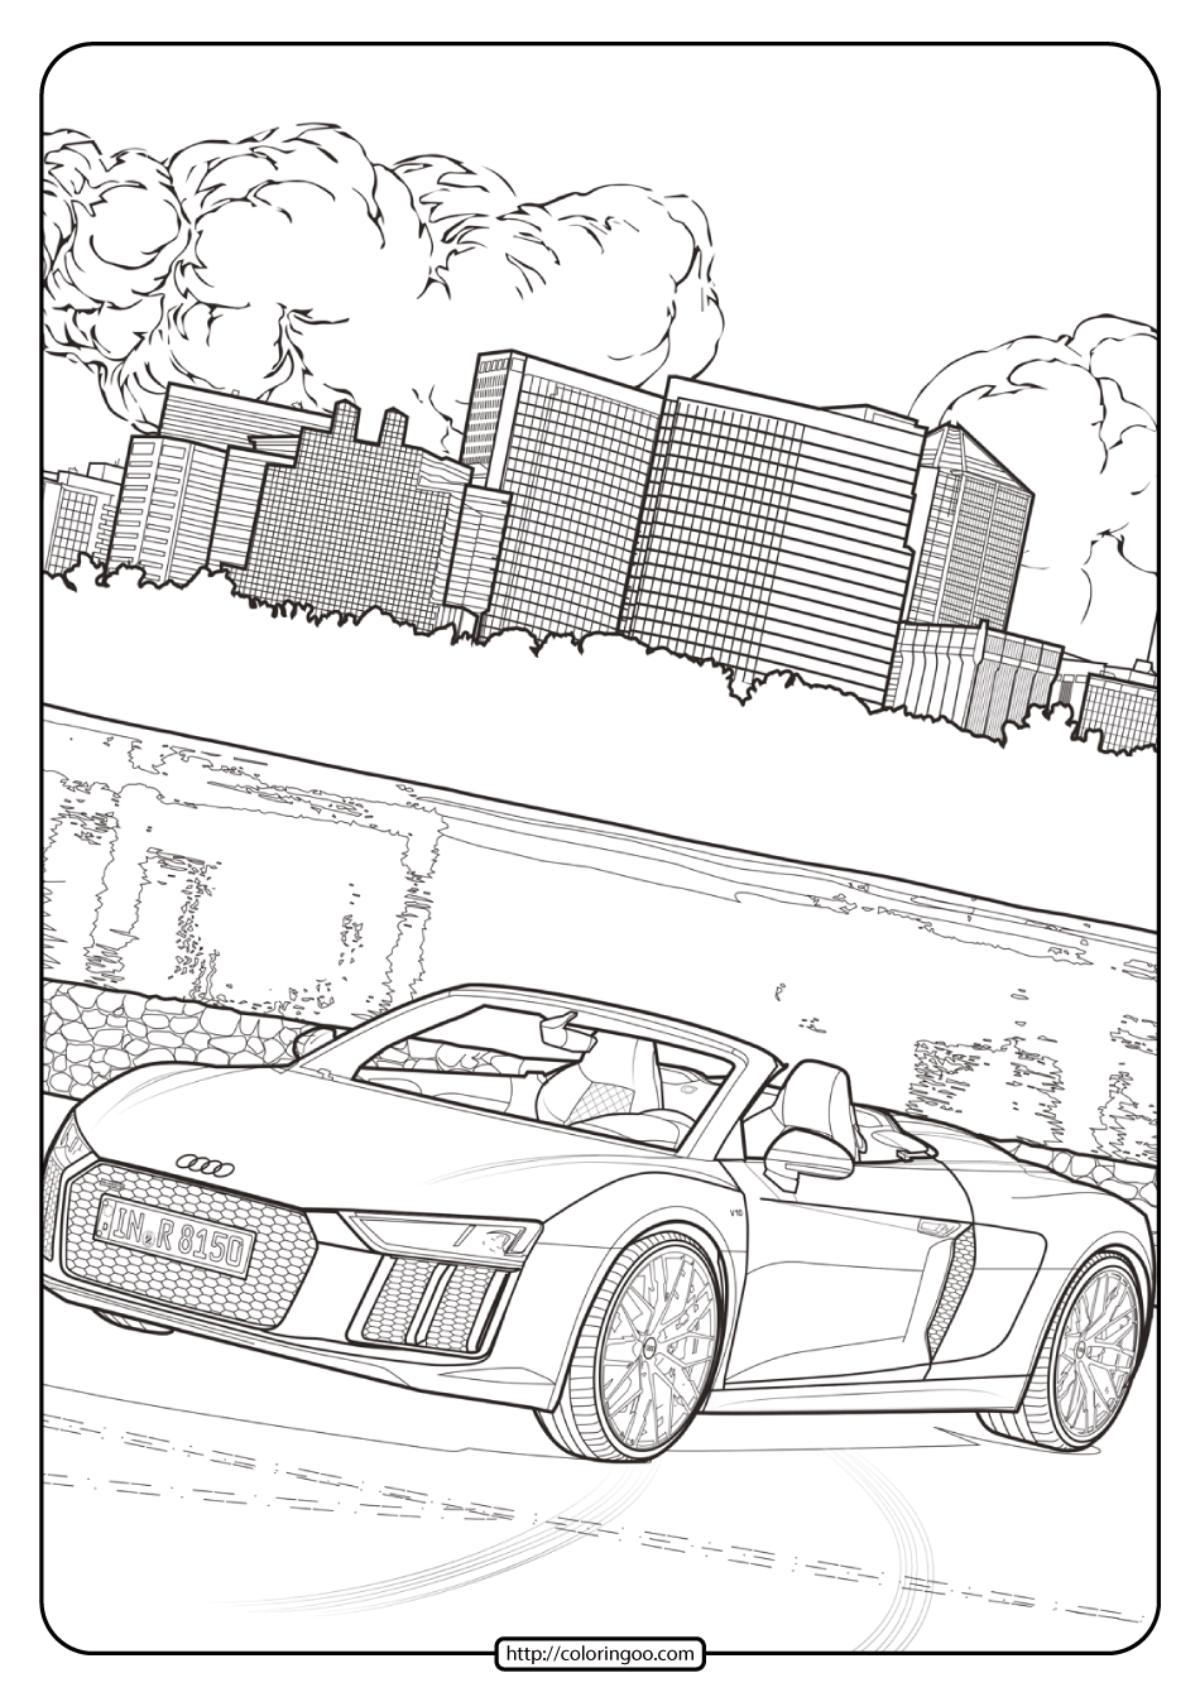 Pagani Zonda R Coloring Page - Free Printable Coloring Pages for Kids | 1697x1200